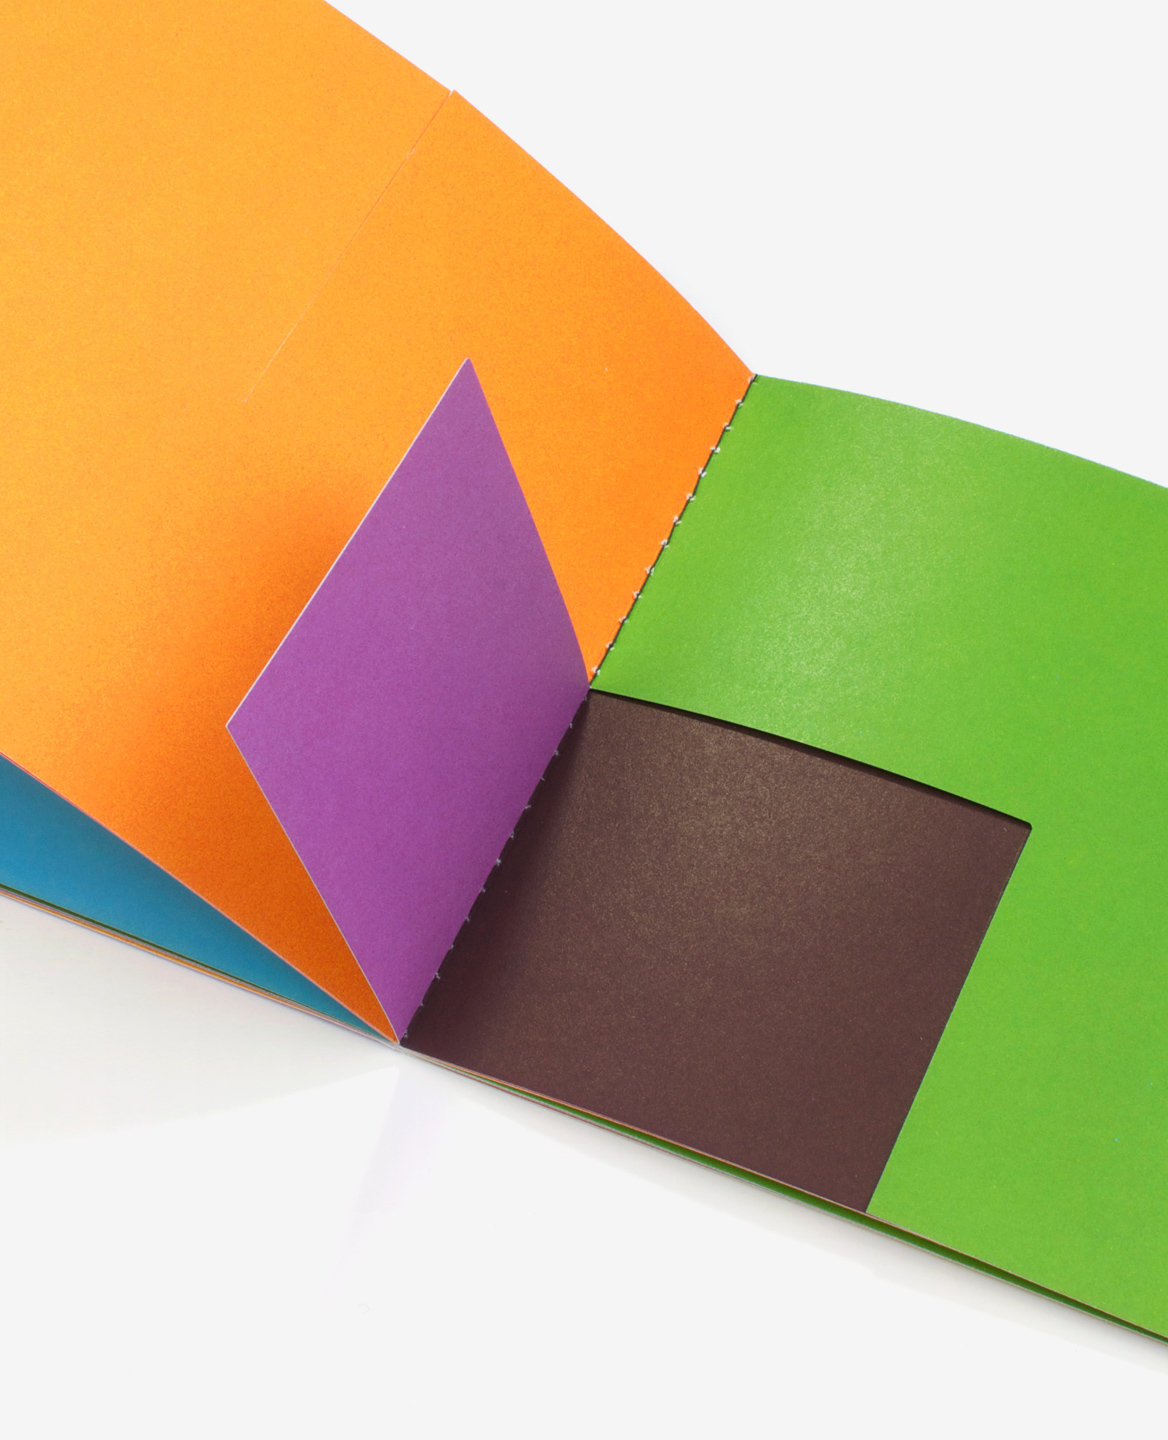 Detail of a folding in the book Colors by Antonio Ladrillo published by Éditions du livre